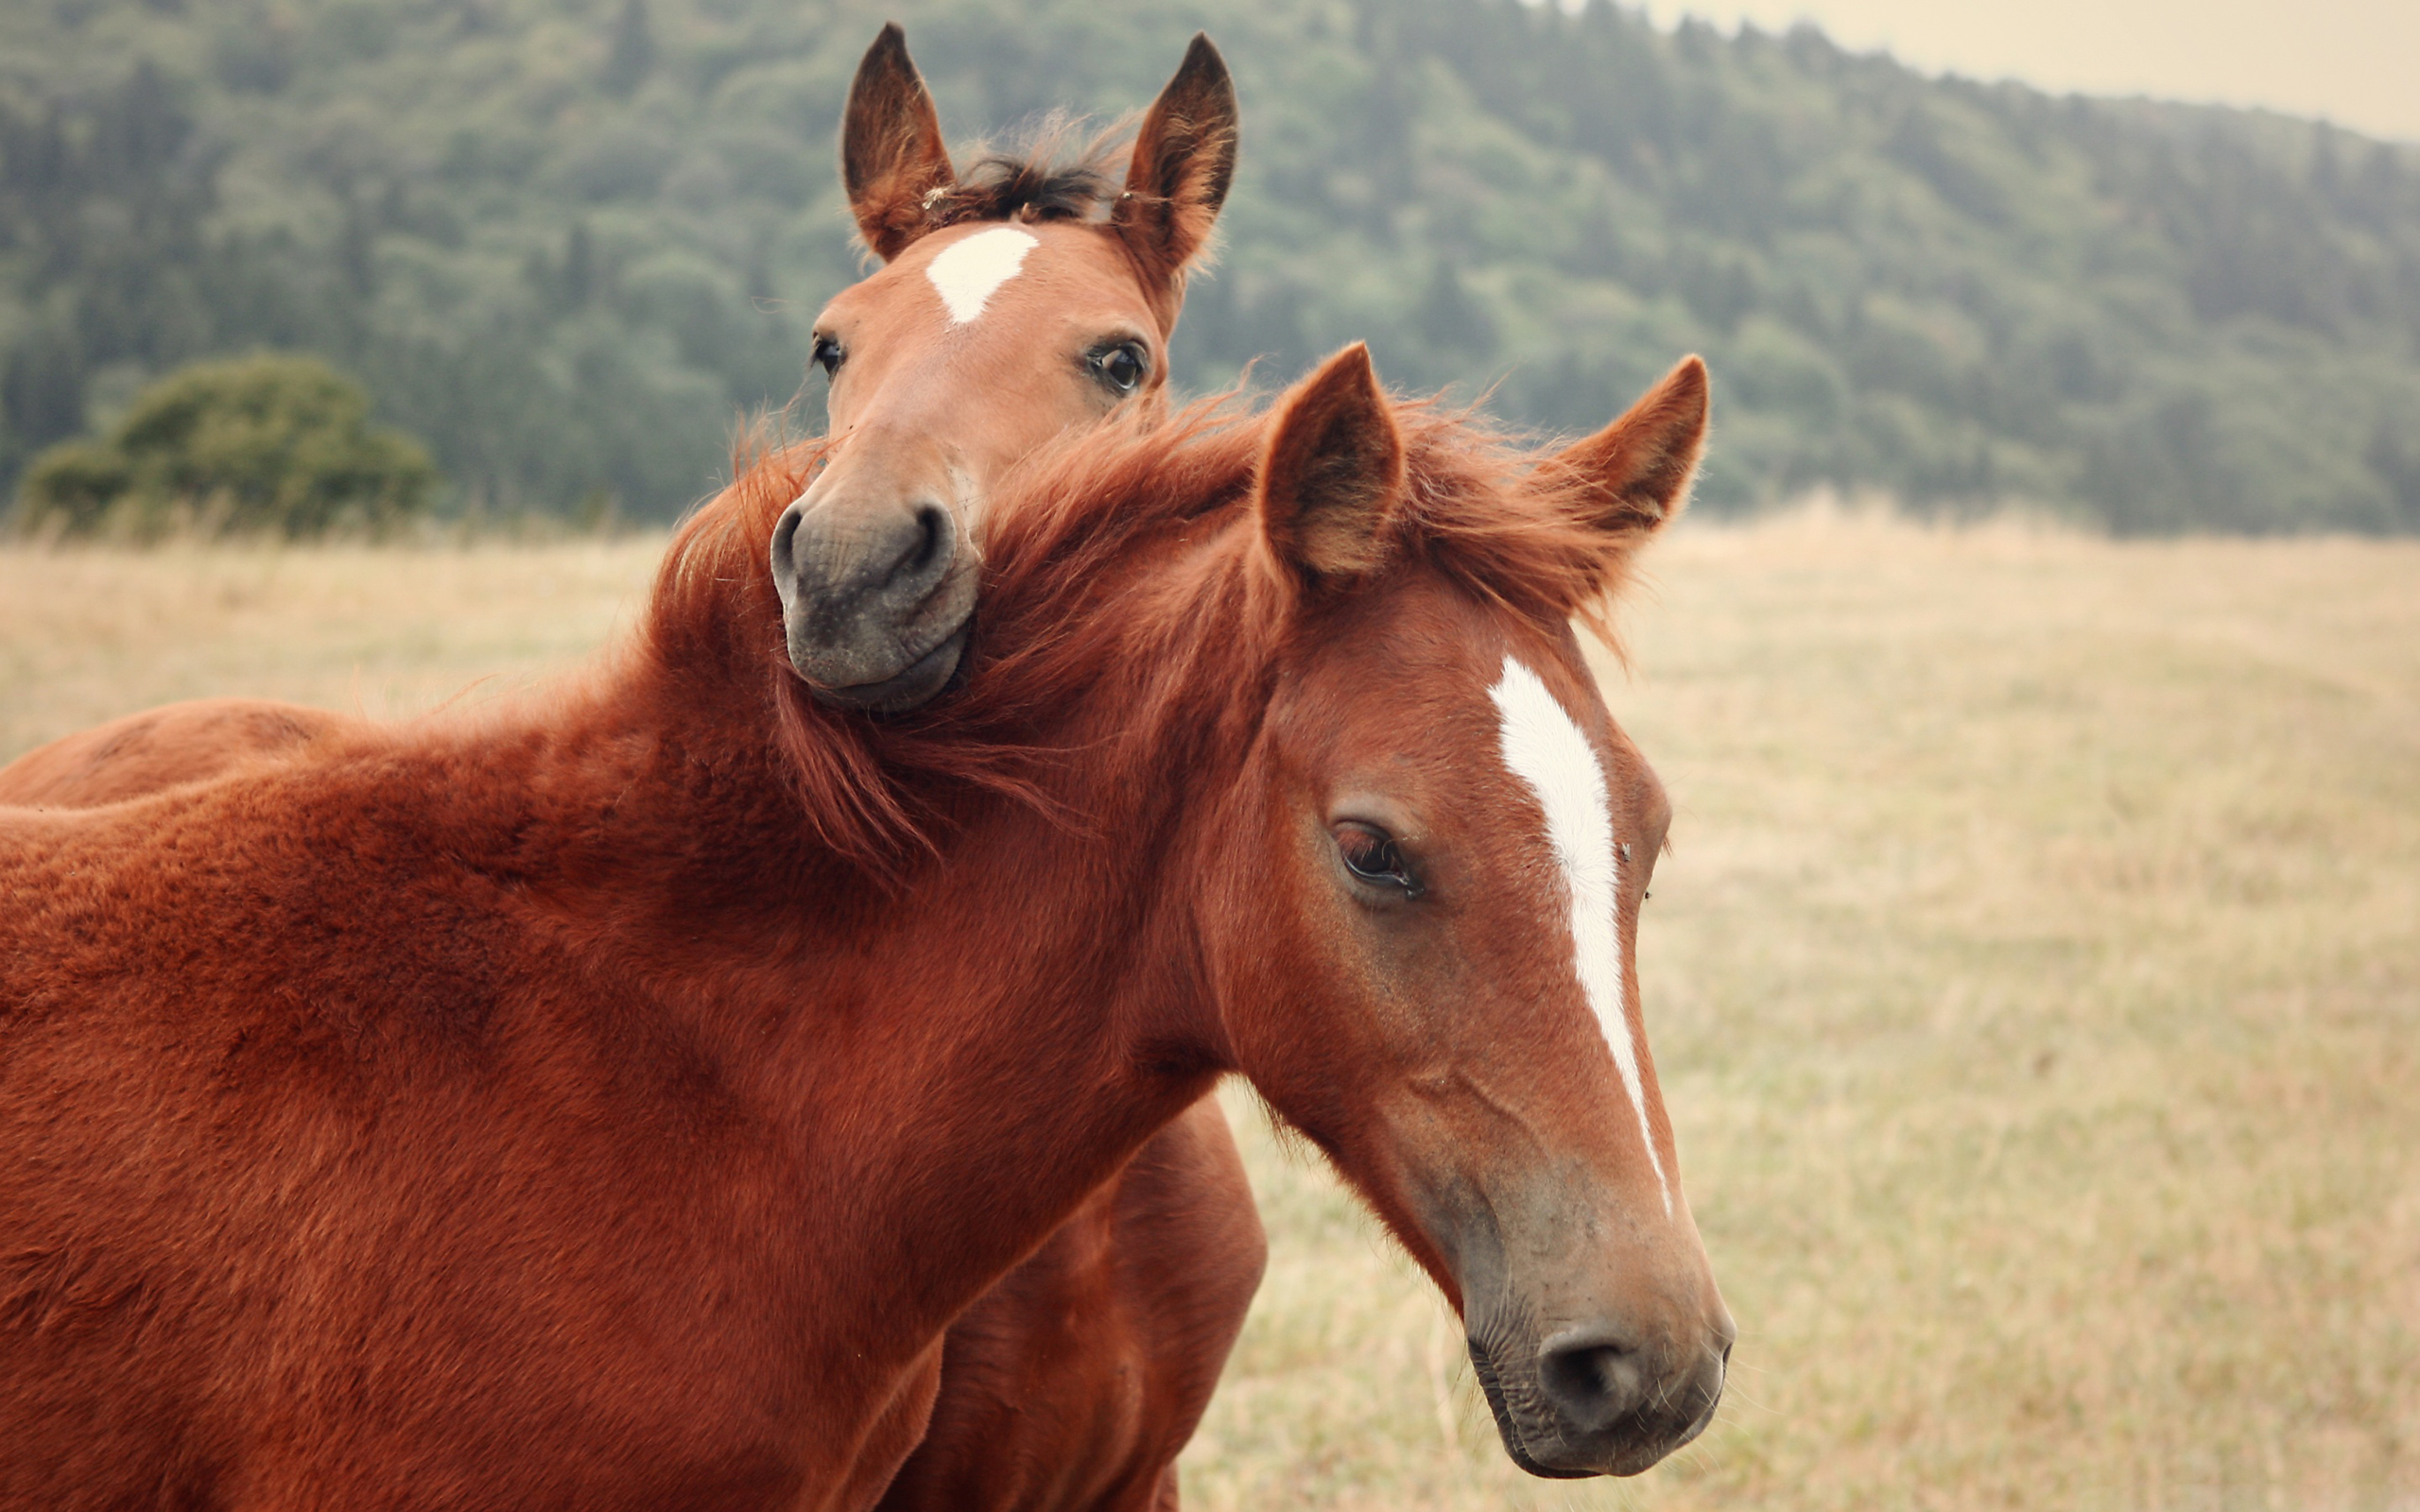 Cute Brown Horse wallpaper | 2560x1600 | #12396